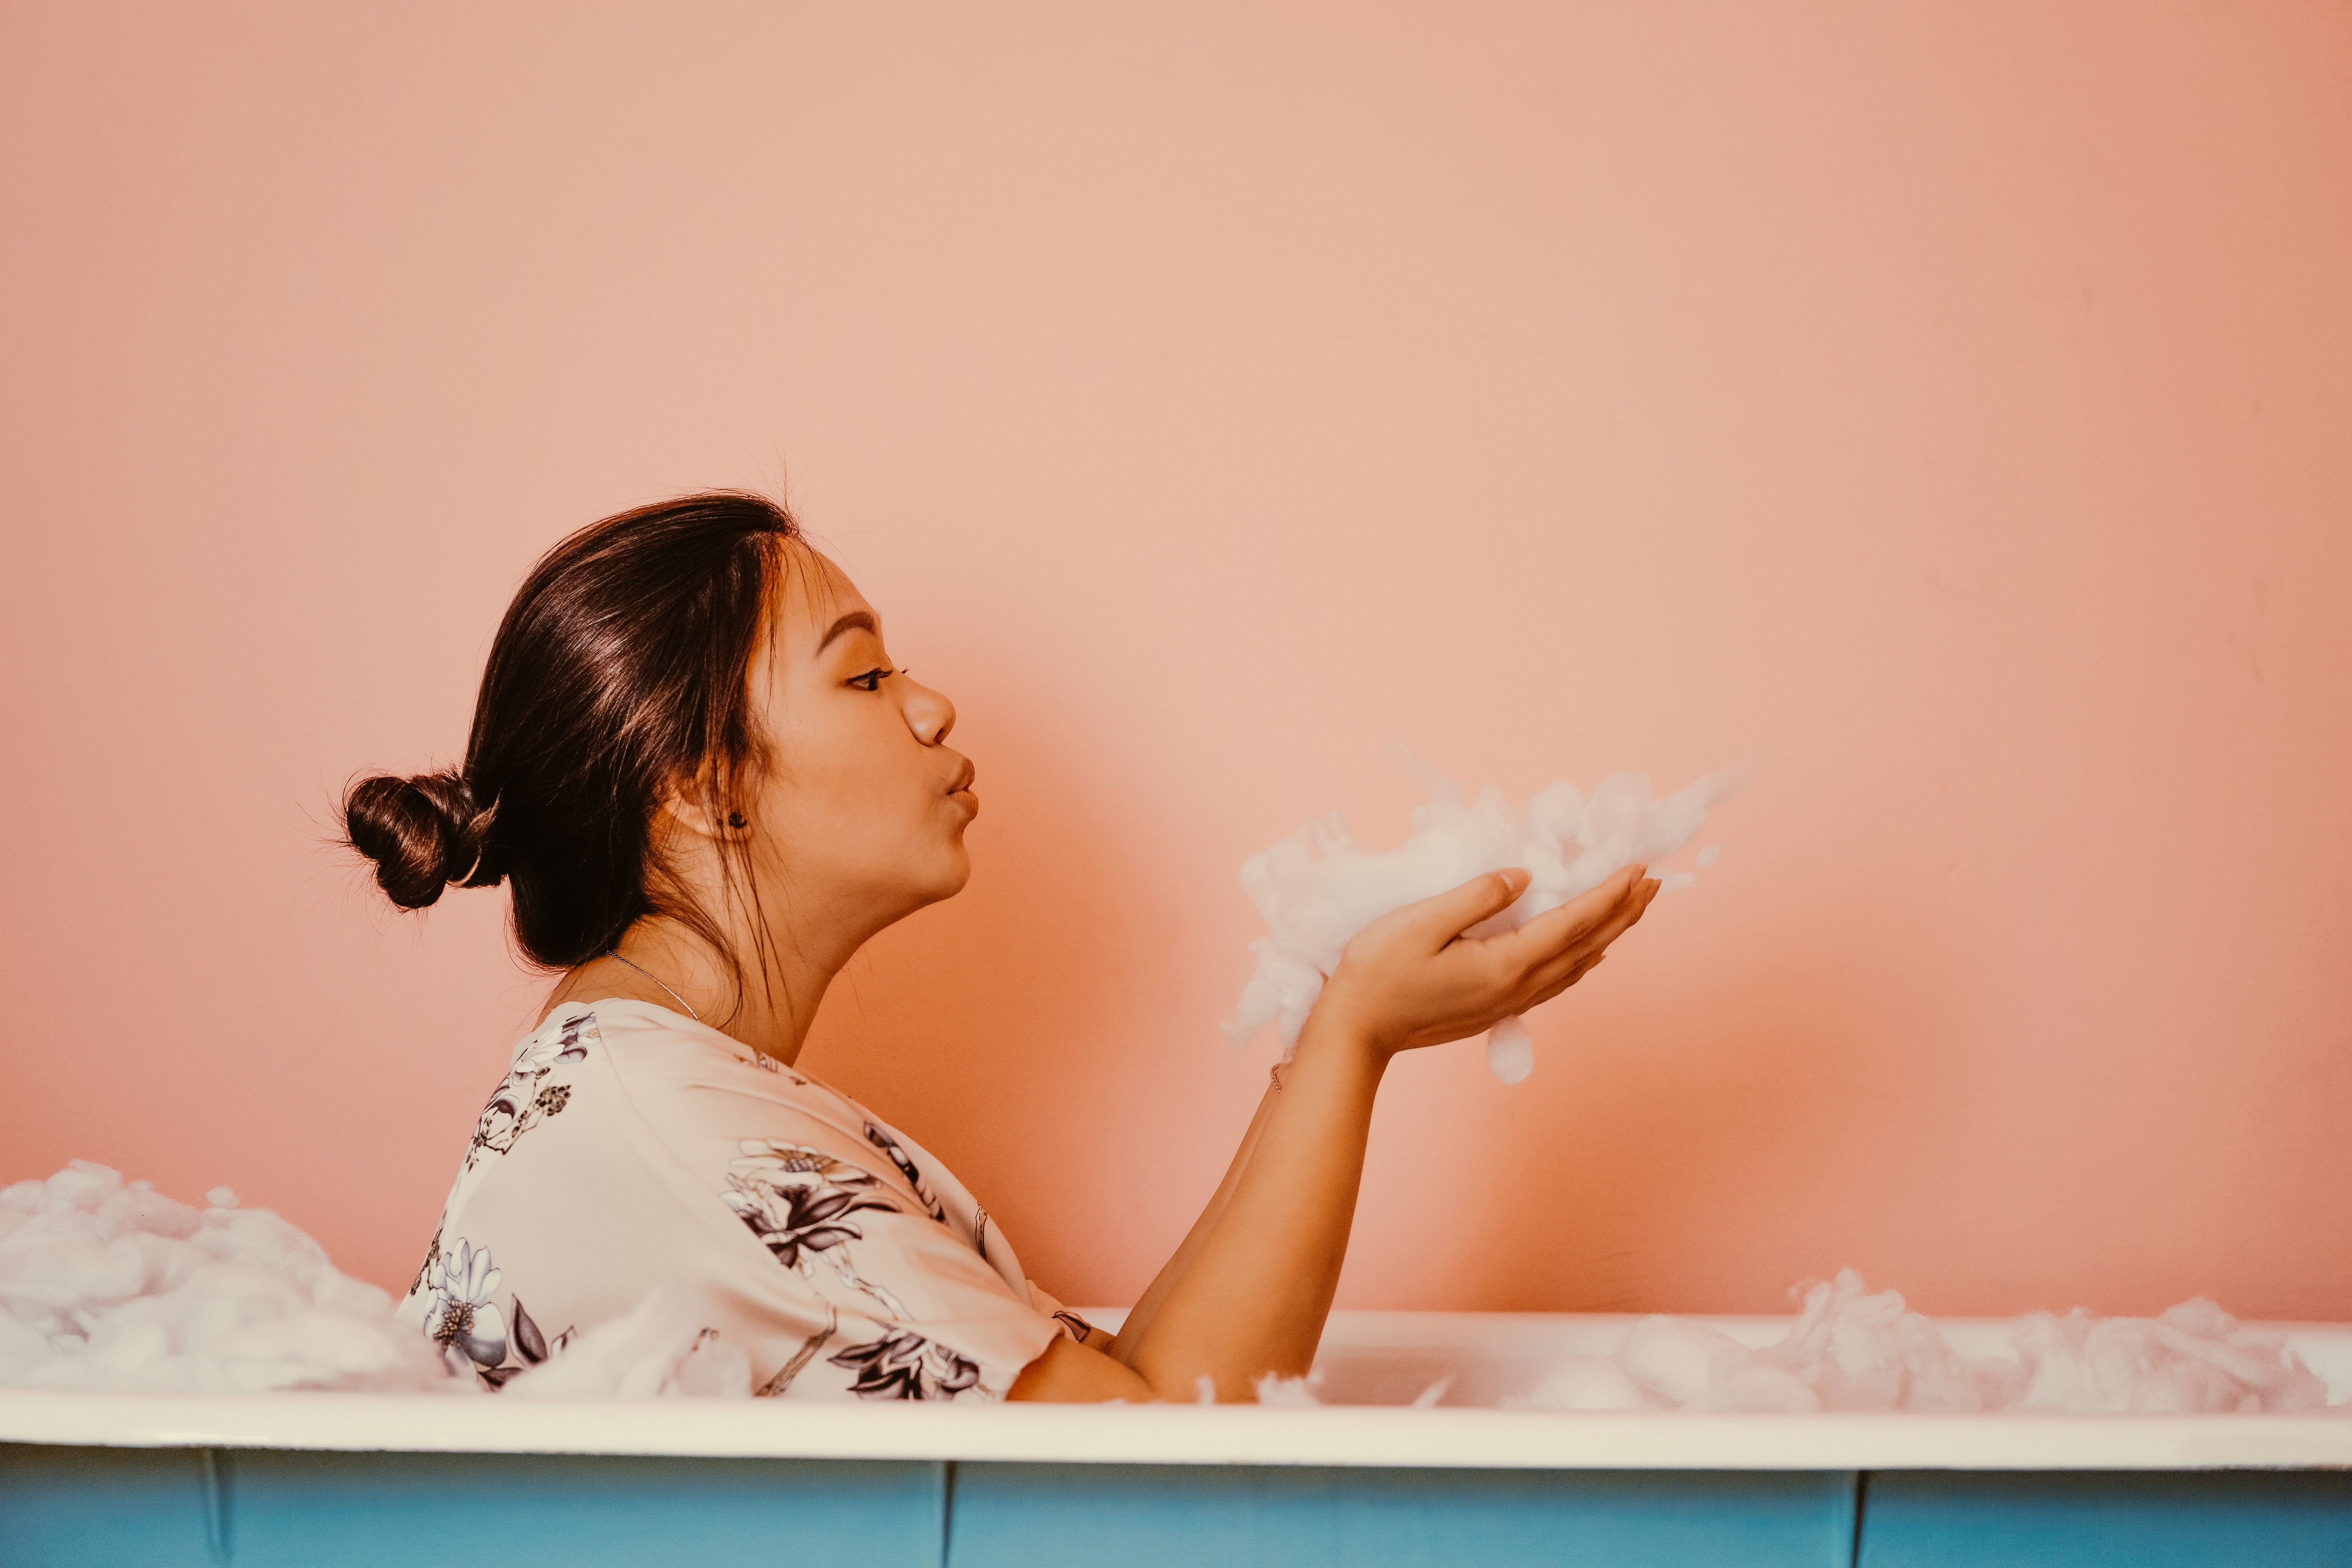 woman in a bath tub blowing bubbles and using body wash.